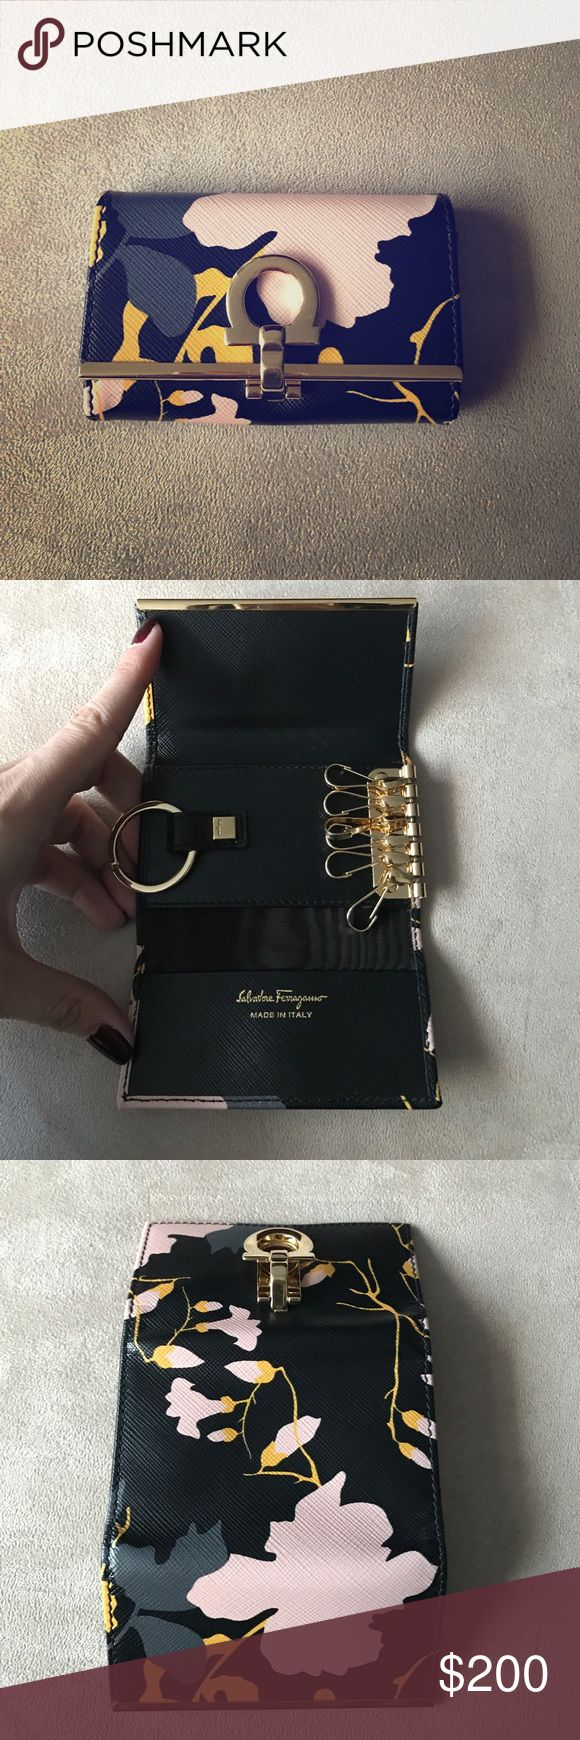 Salvatore Ferragamo Key Wallet Never used brand new Ferragamo key wallet. Has 6 clasps for keys and one large key ring. Pocket for credit card, etc. Salvatore Ferragamo Accessories Key & Card Holders